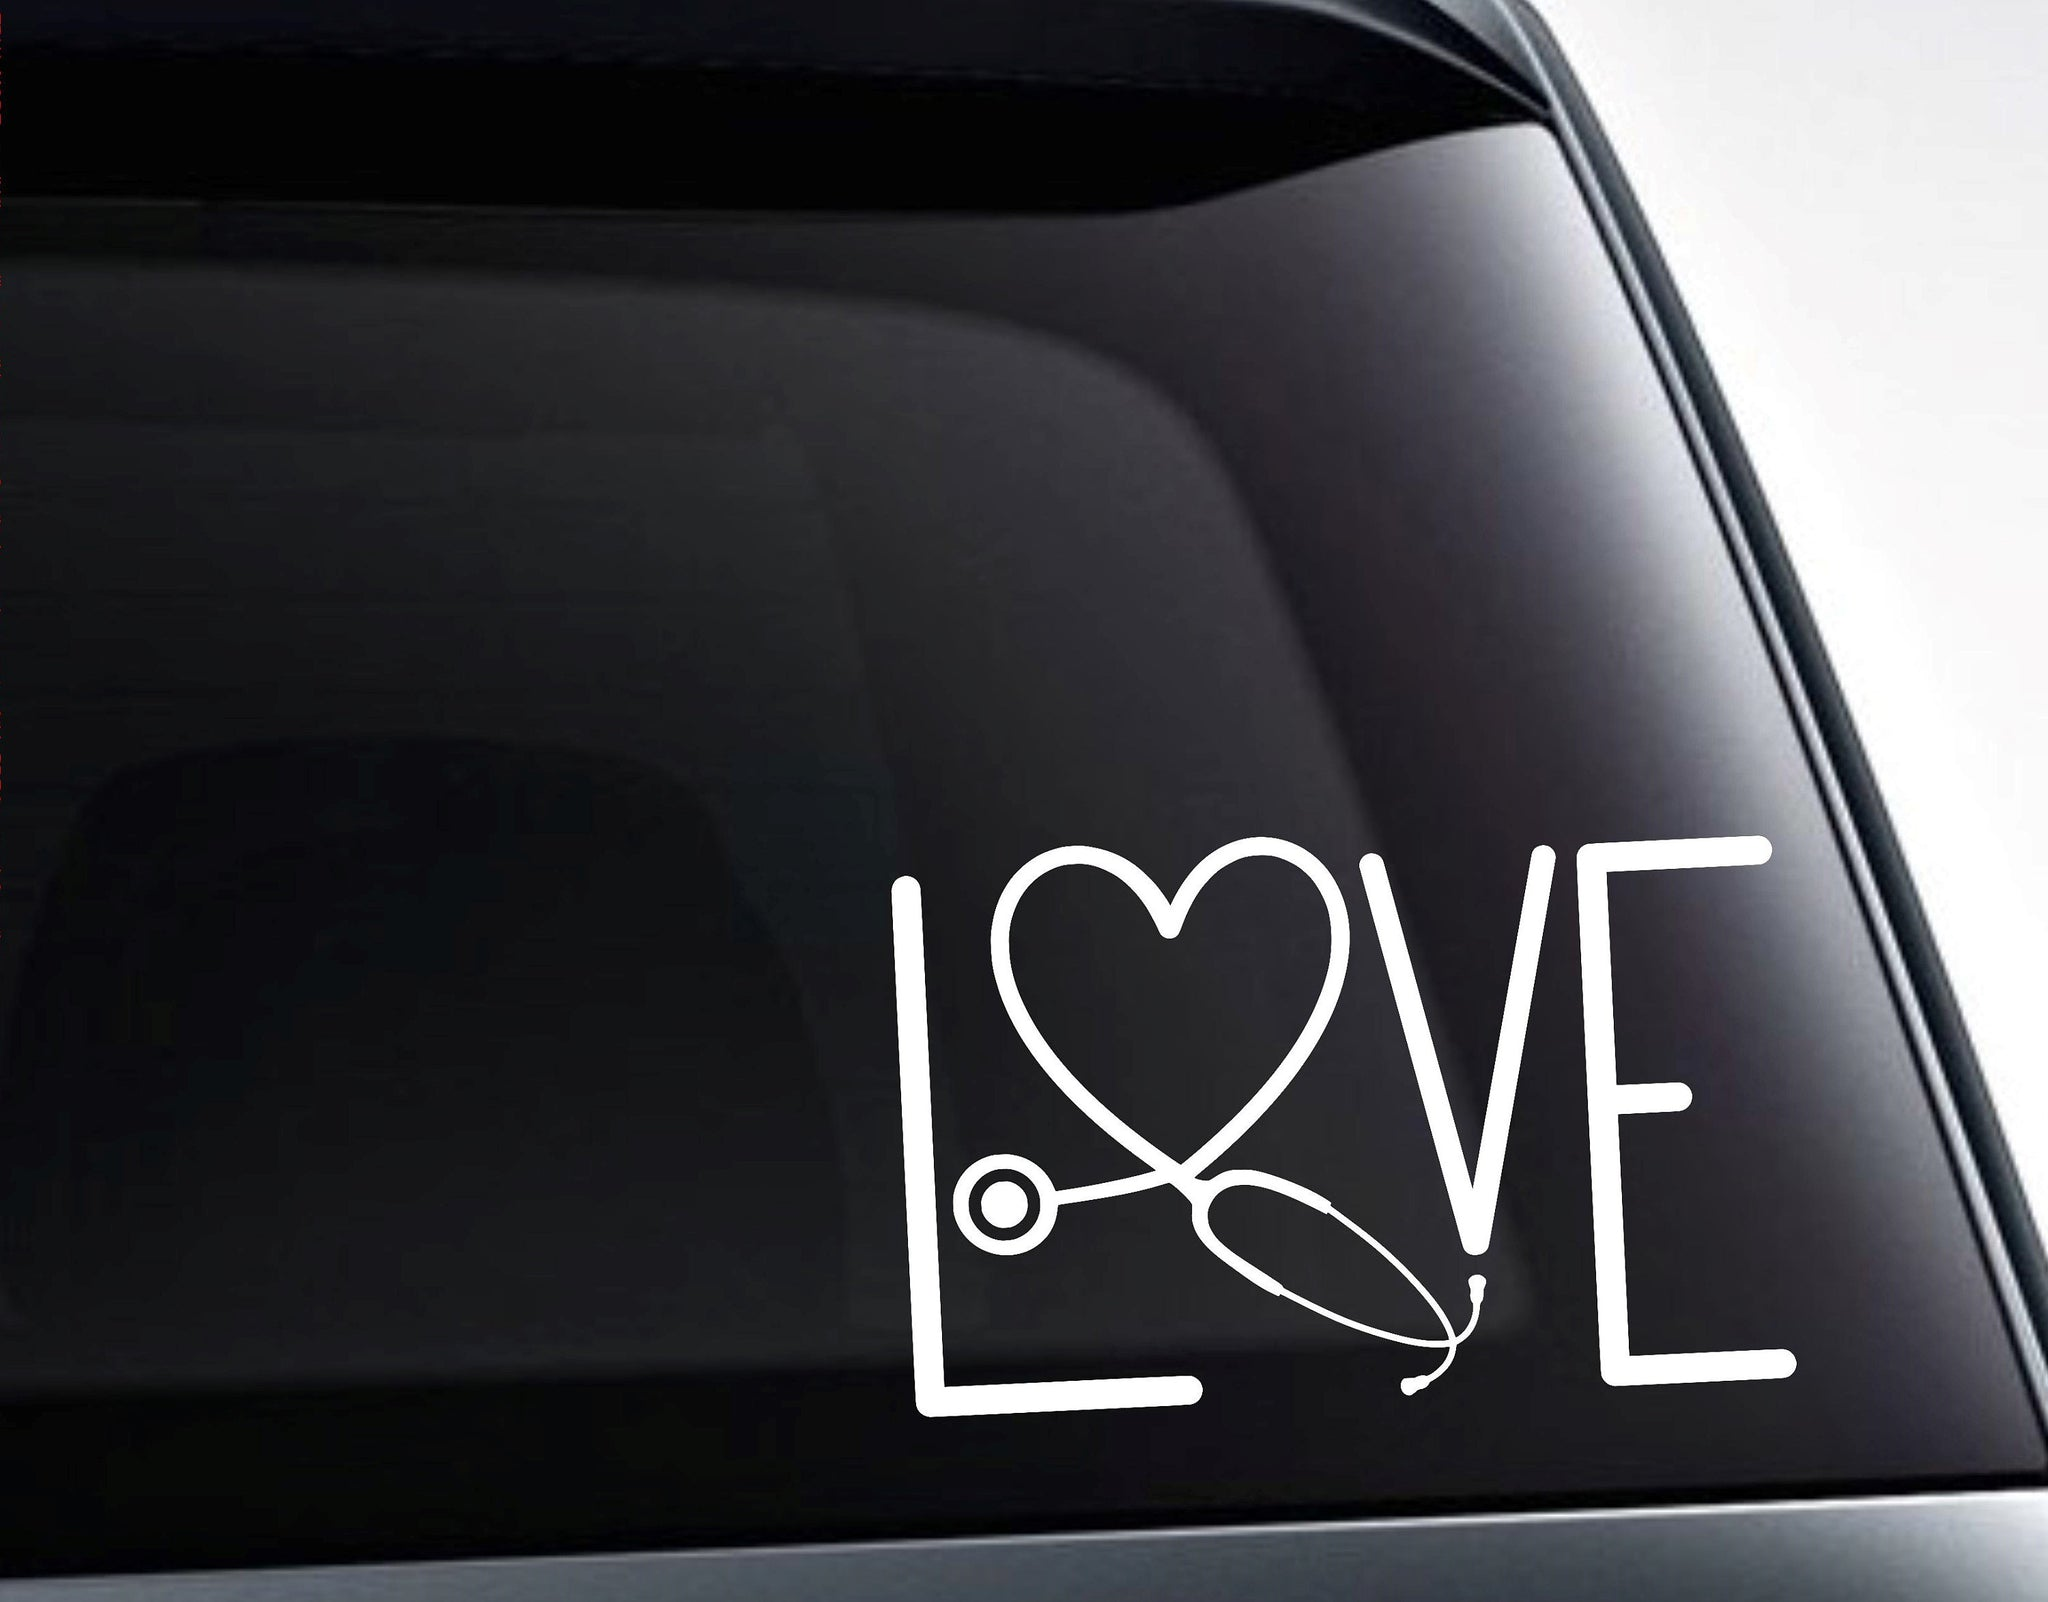 Love Nurse Stethoscope Vinyl Decal Sticker